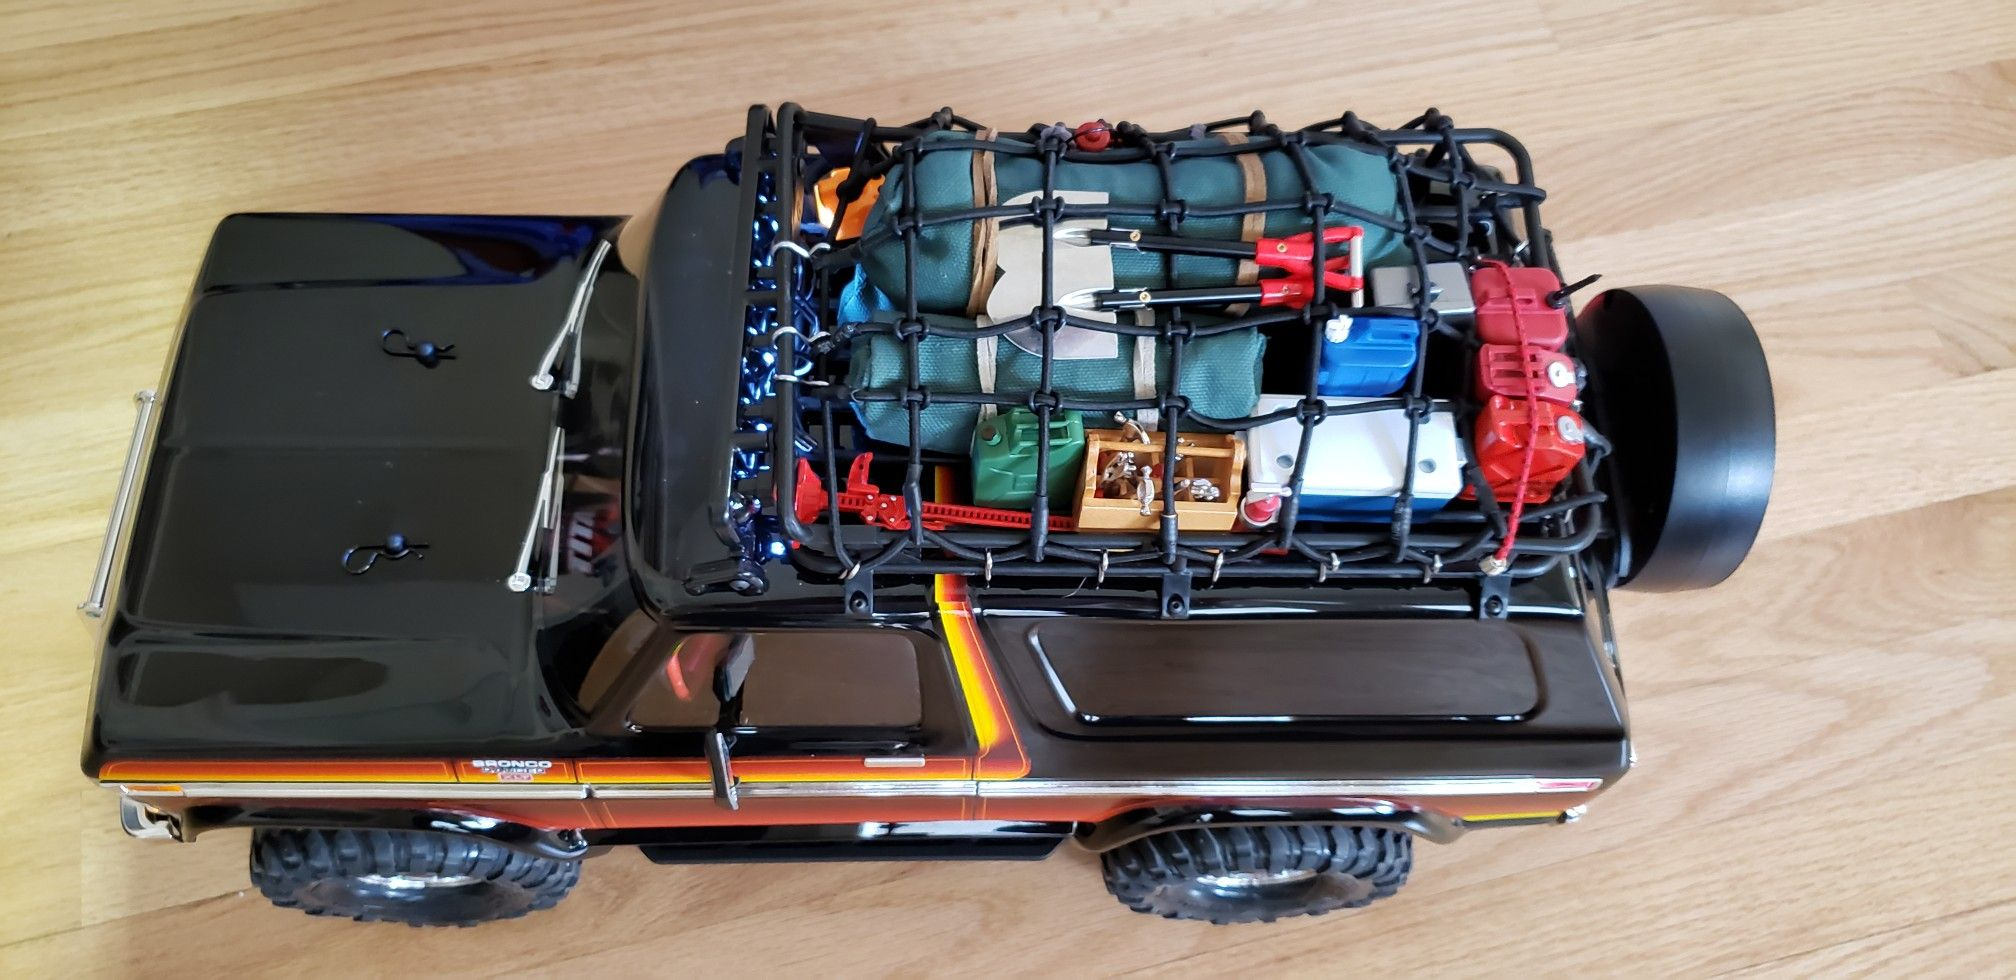 Traxxas Trx4 Ford Bronco With Roof Rack Cargo Net Roof Mount Light Bar And Tons Of 1 10 Scale Accessories As Going Super Scale Ford Bronco Traxxas Roof Rack